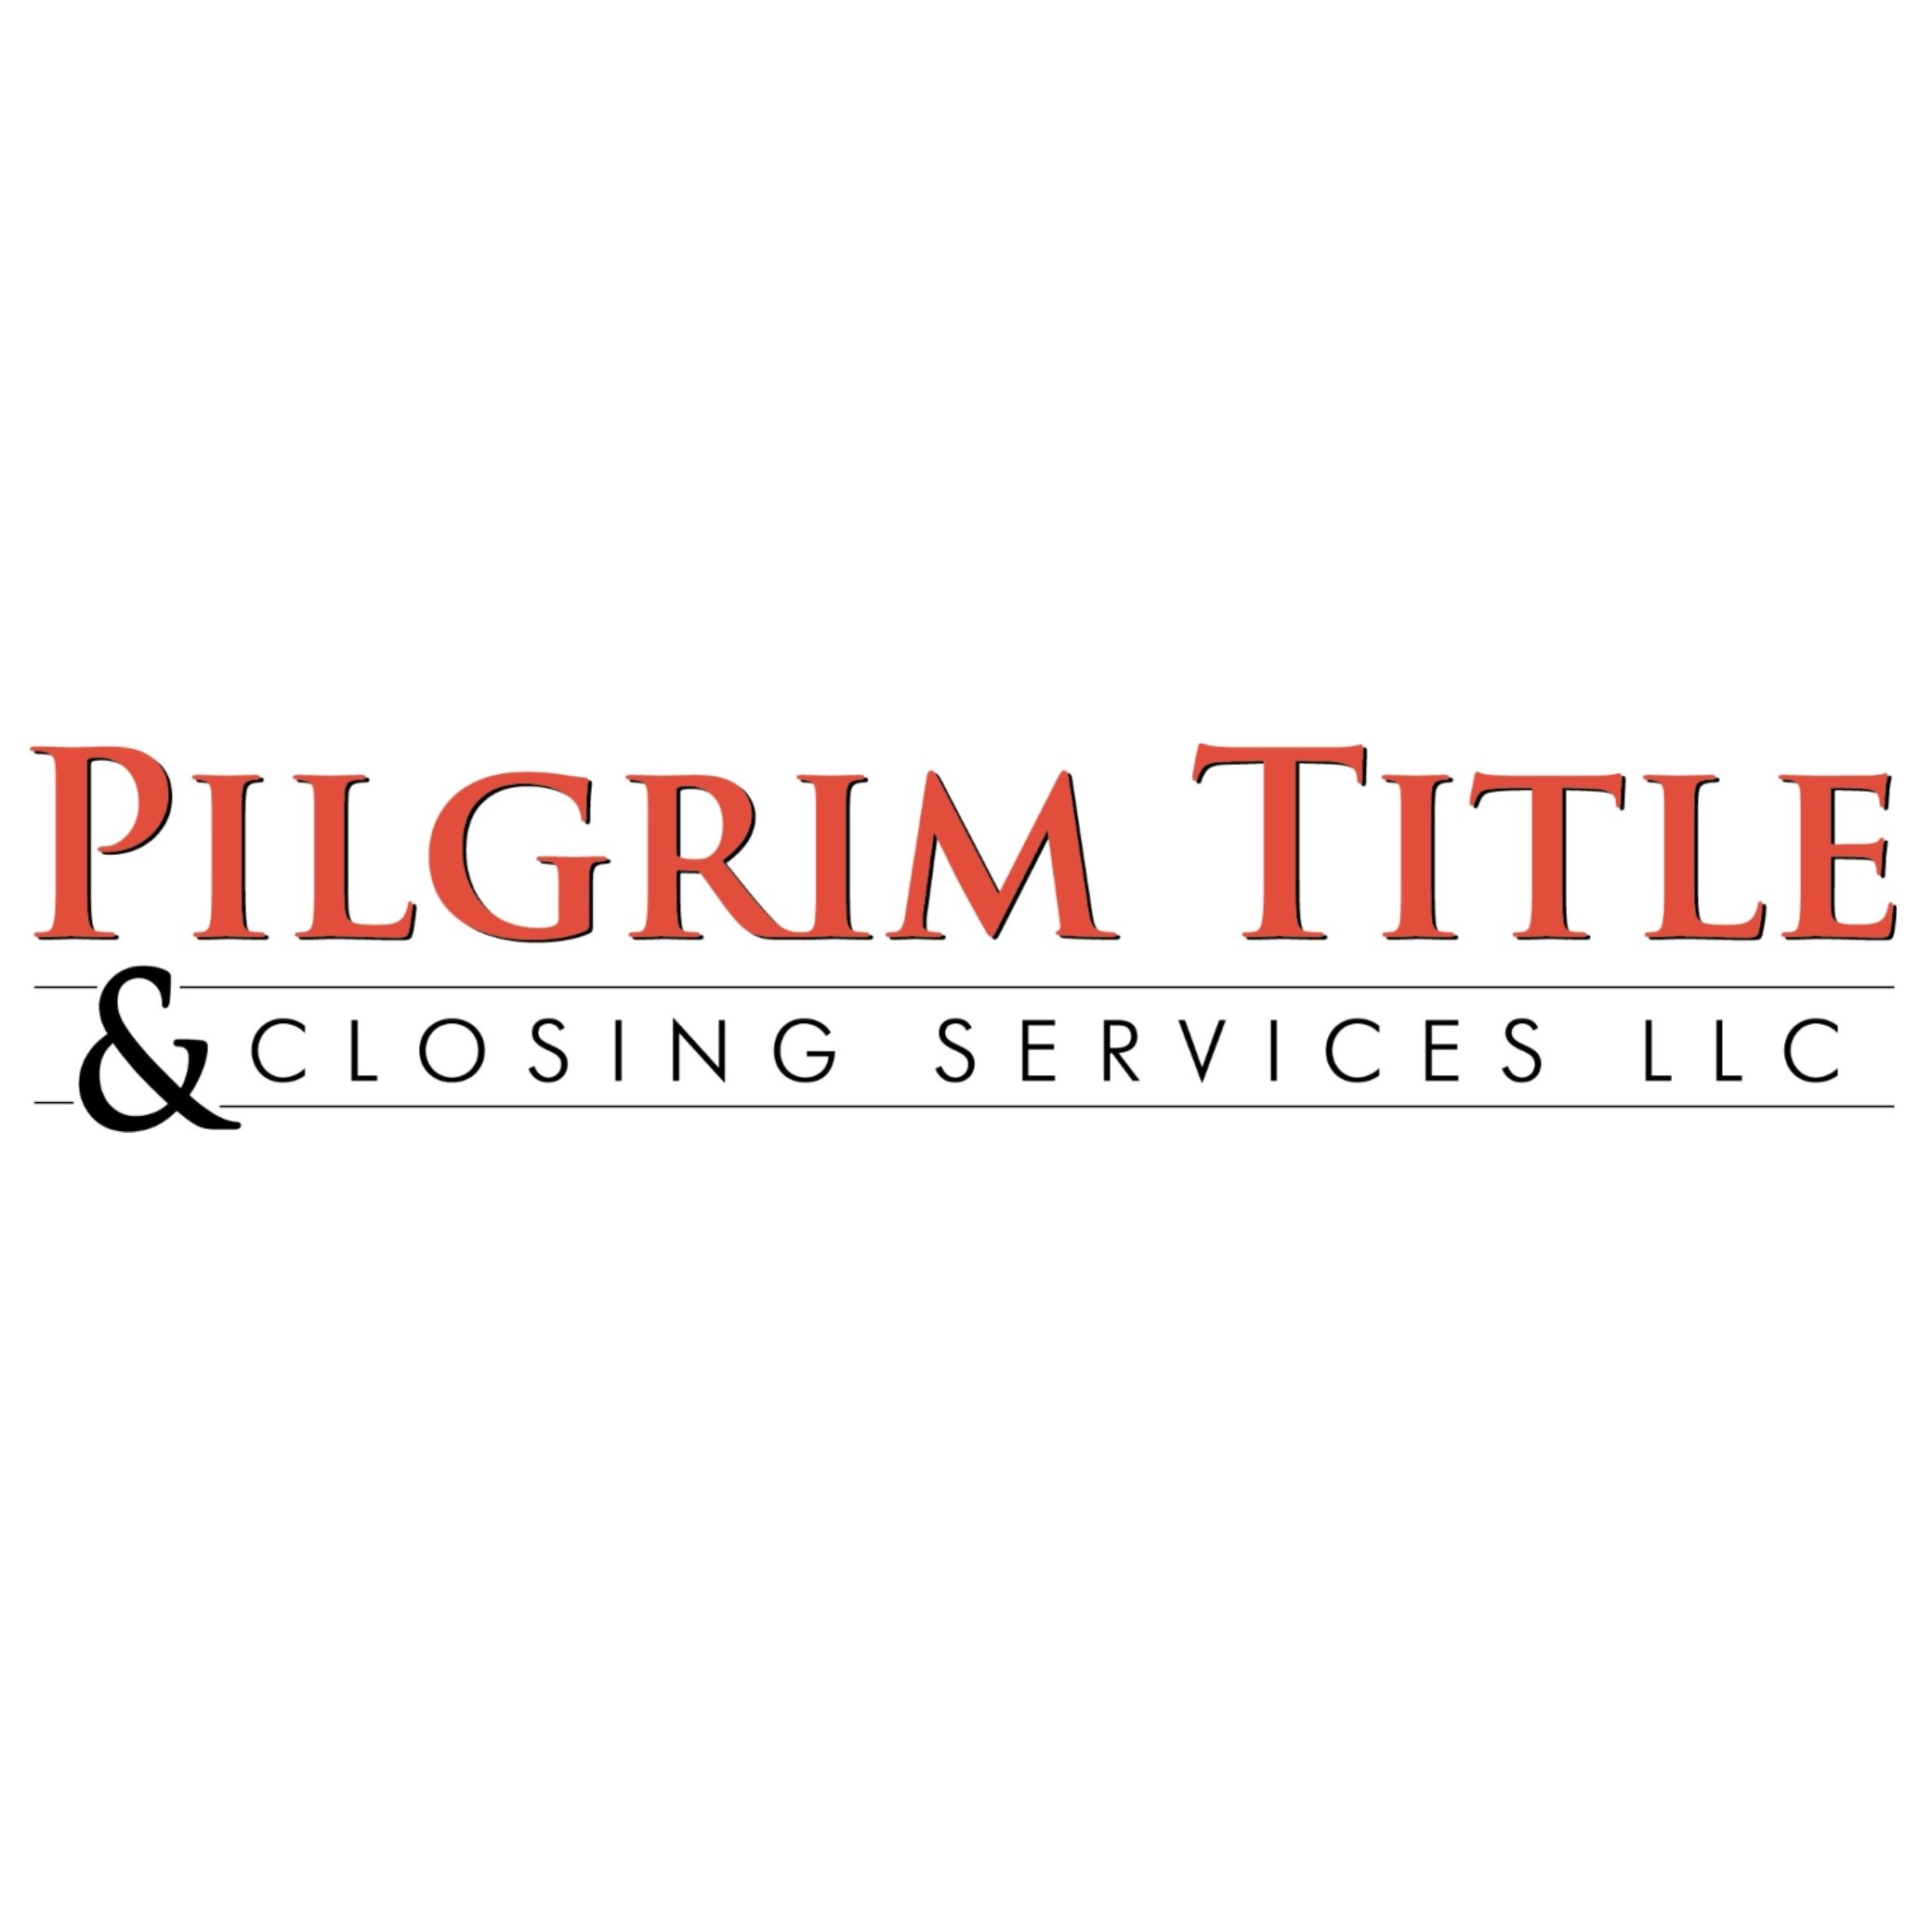 Pilgrim Title & Closing Services, LLC